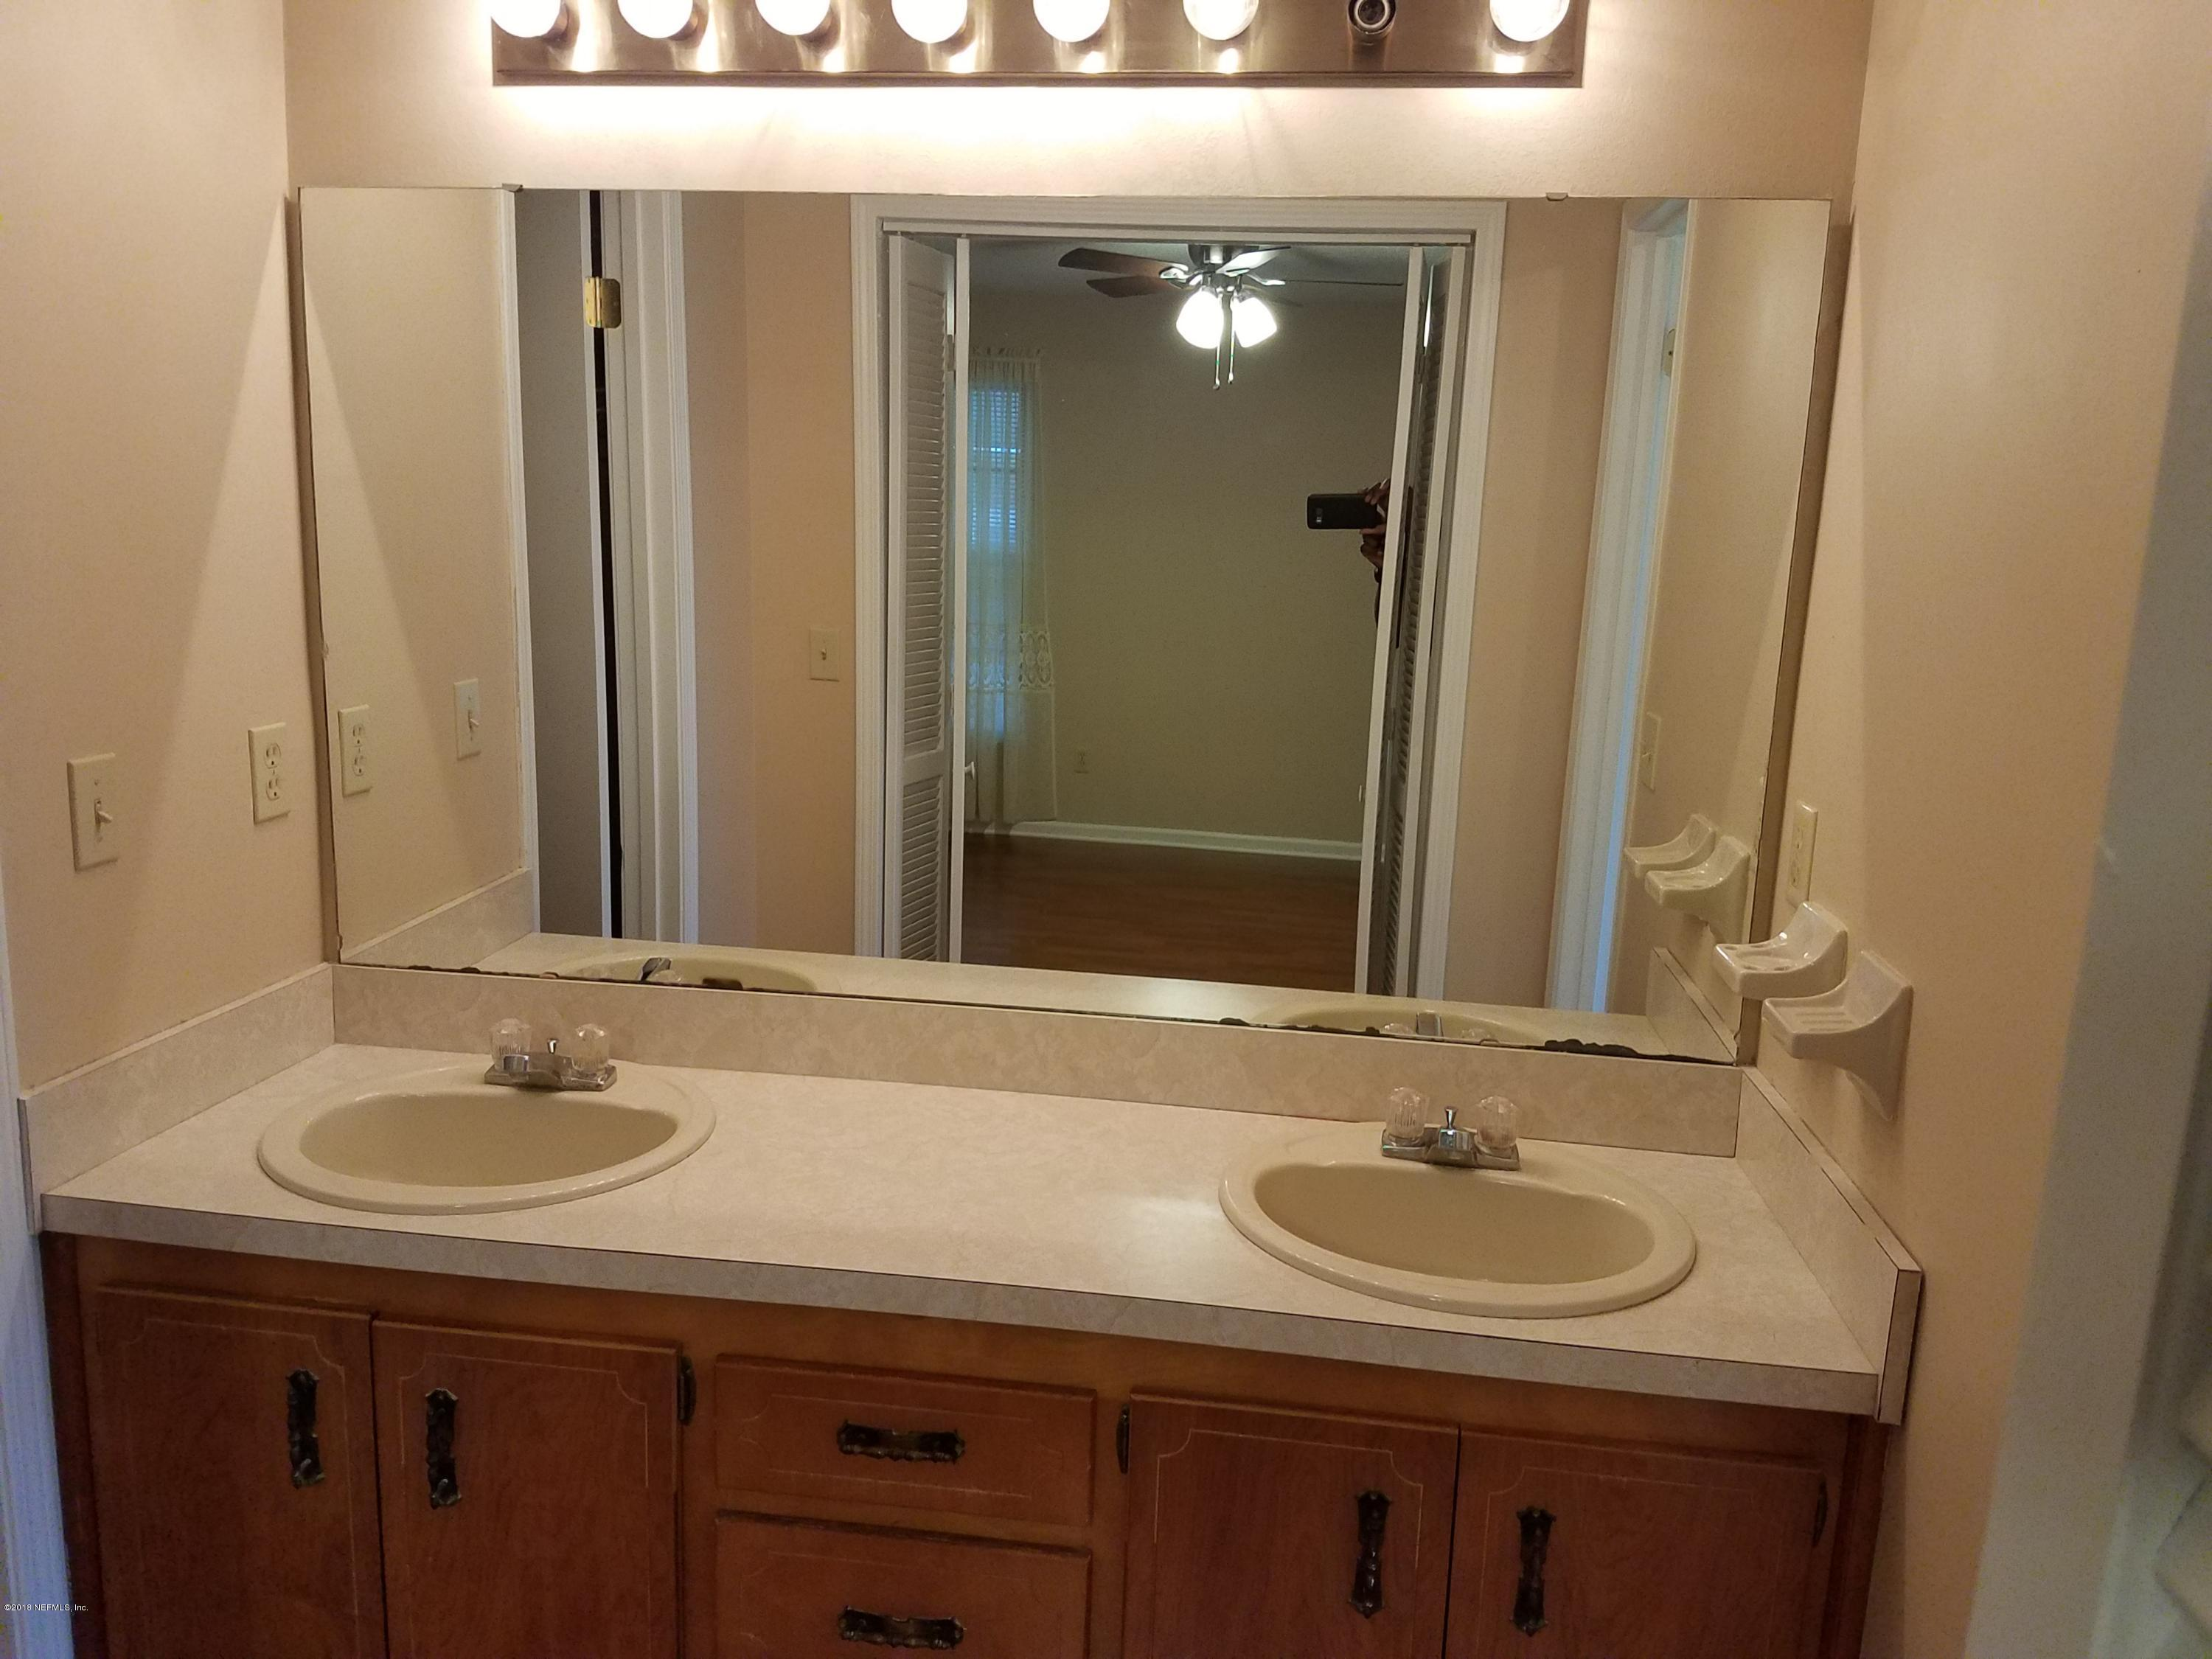 6007 NORSE, JACKSONVILLE, FLORIDA 32244, 3 Bedrooms Bedrooms, ,2 BathroomsBathrooms,Residential - single family,For sale,NORSE,949664